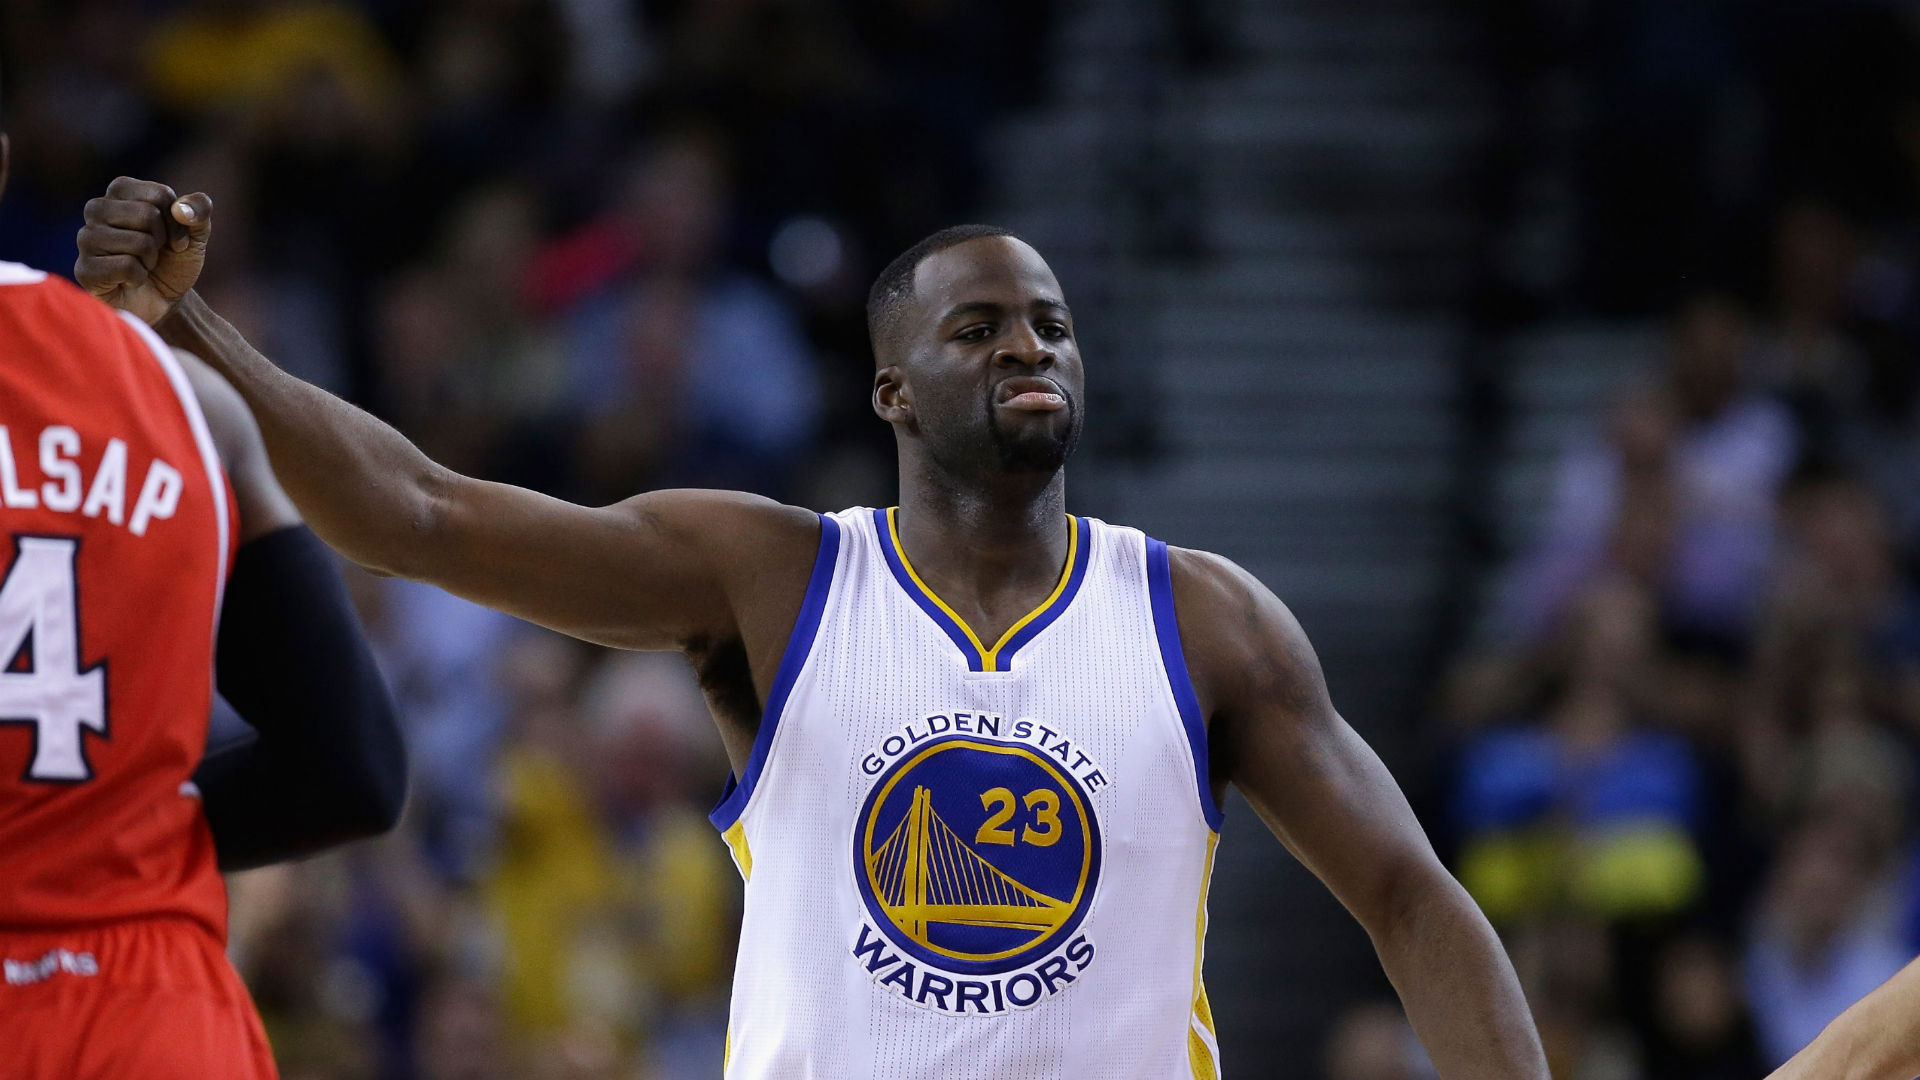 Draymond Green enjoys destroying the hopes and dreams of Rockets fans